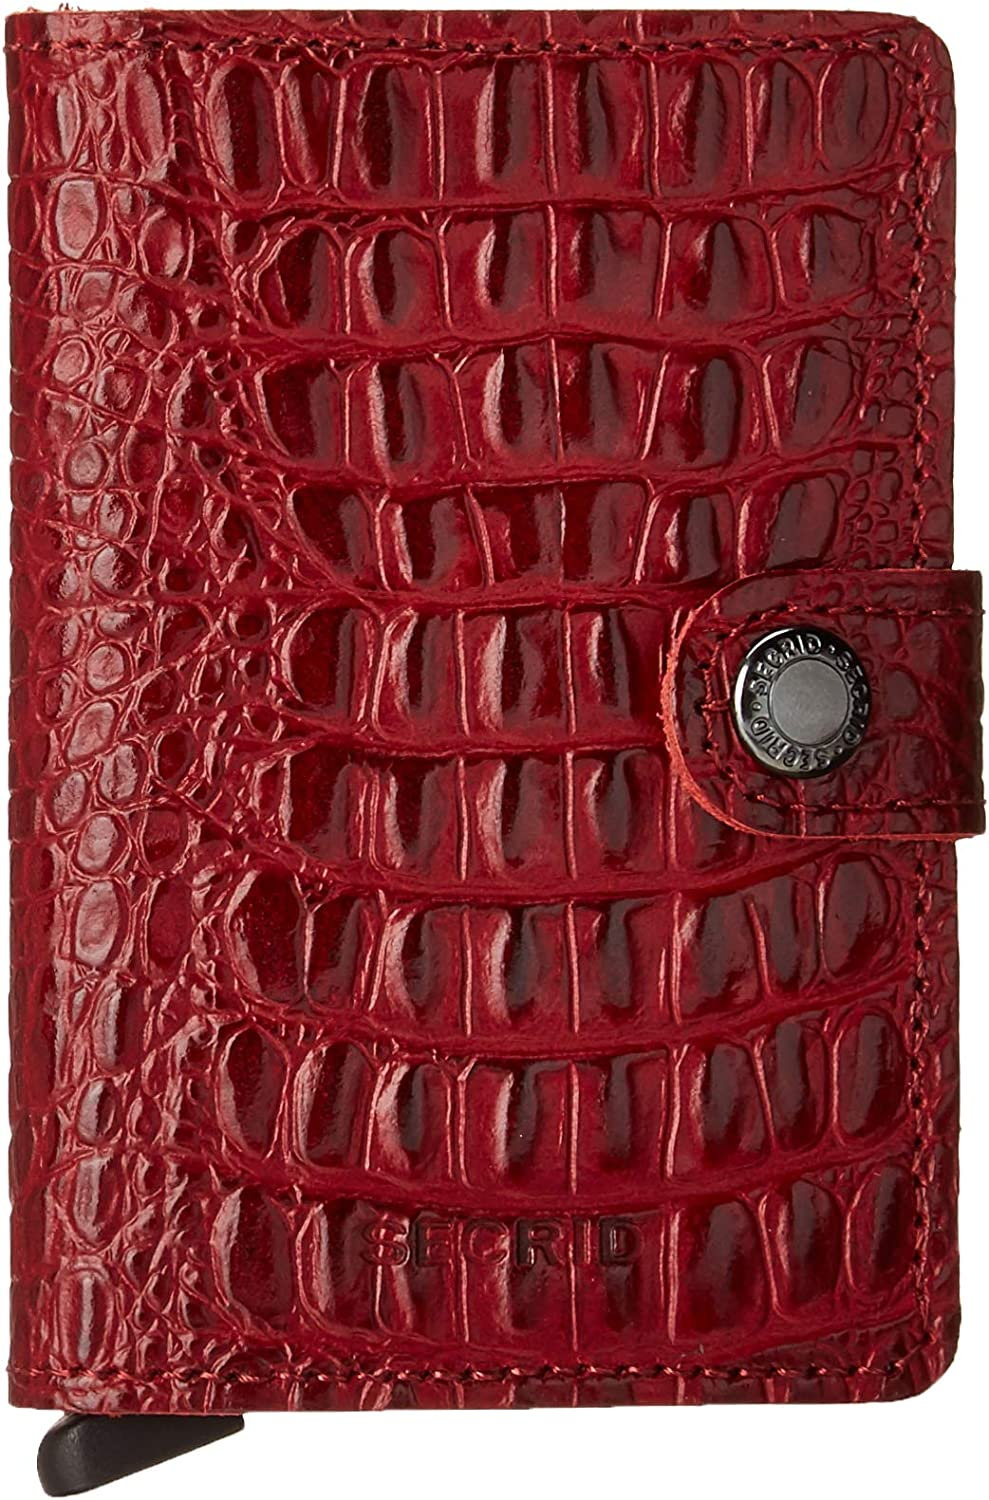 Secrid Mini Wallet Nile Ruby RFID Genuine Leather Safe Challenge the lowest price Holds Outlet ☆ Free Shipping